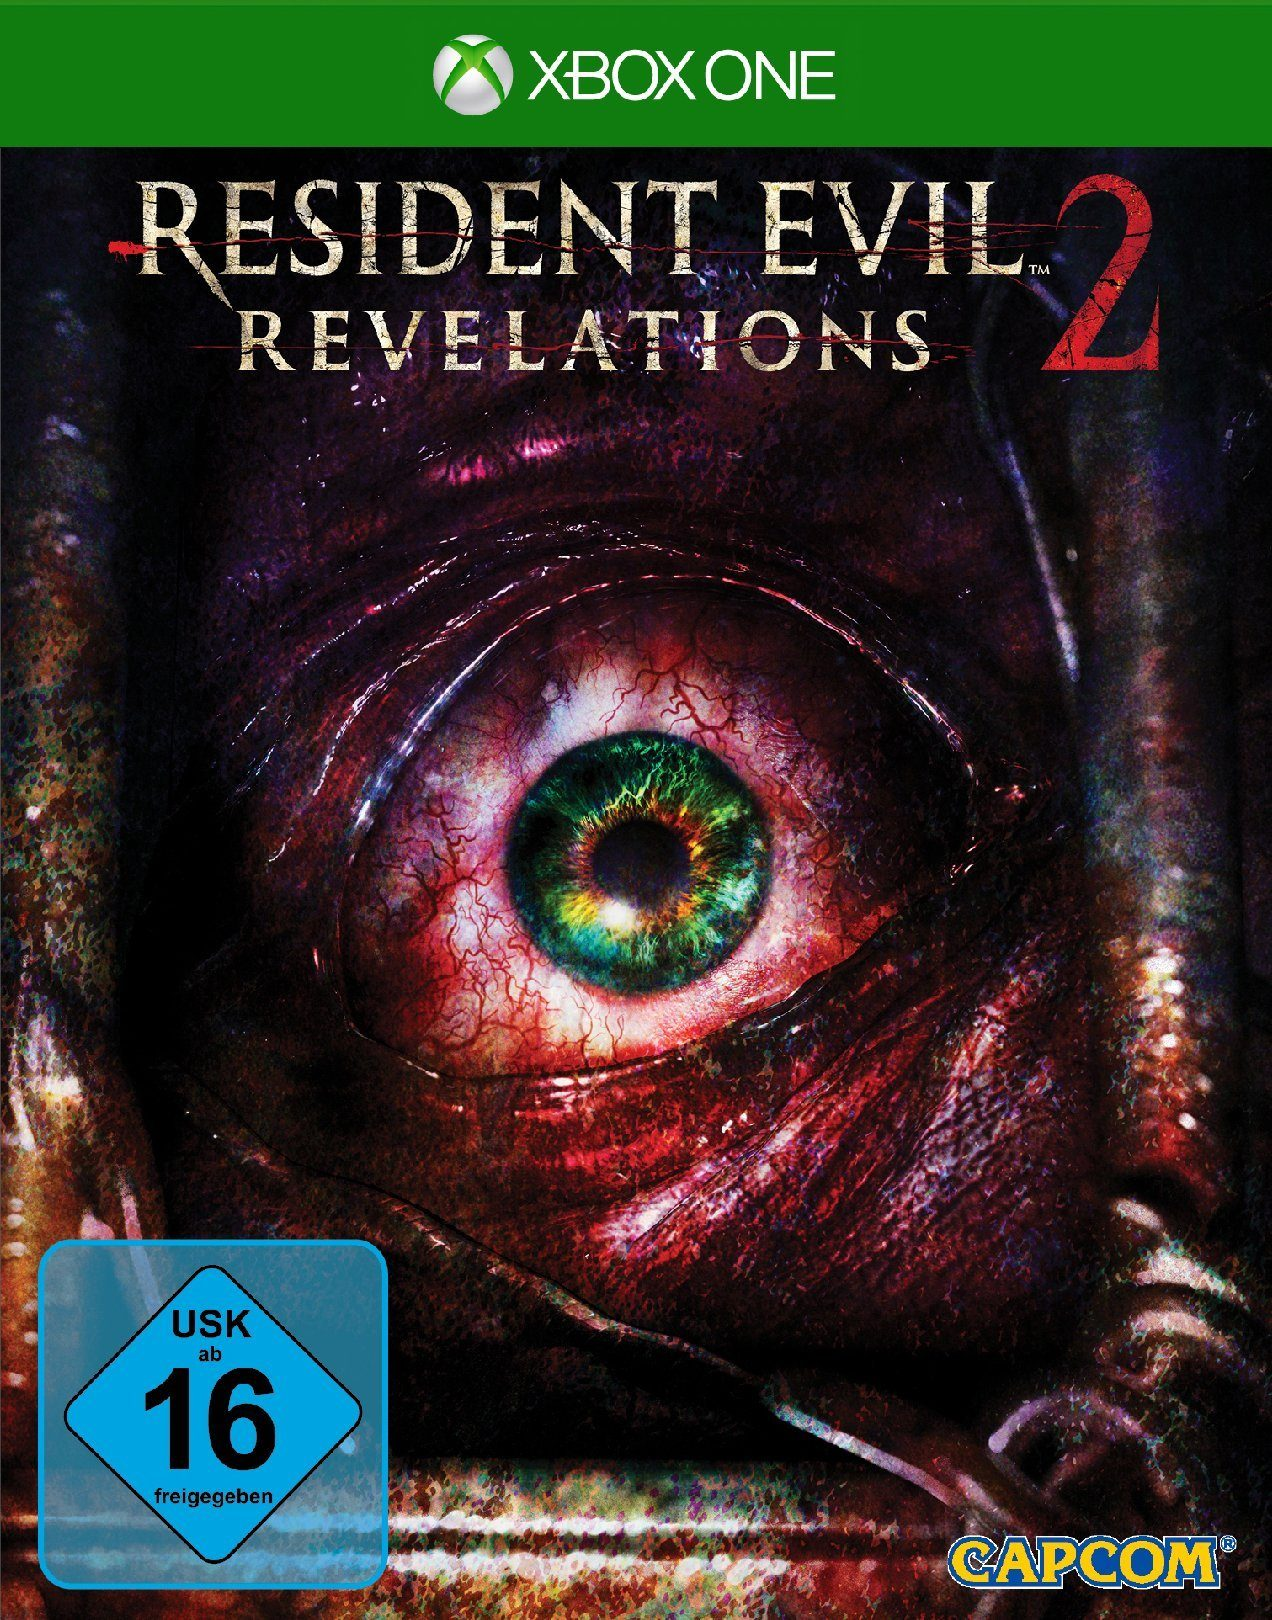 Capcom Resident Evil: Revelations 2 »XBox One«